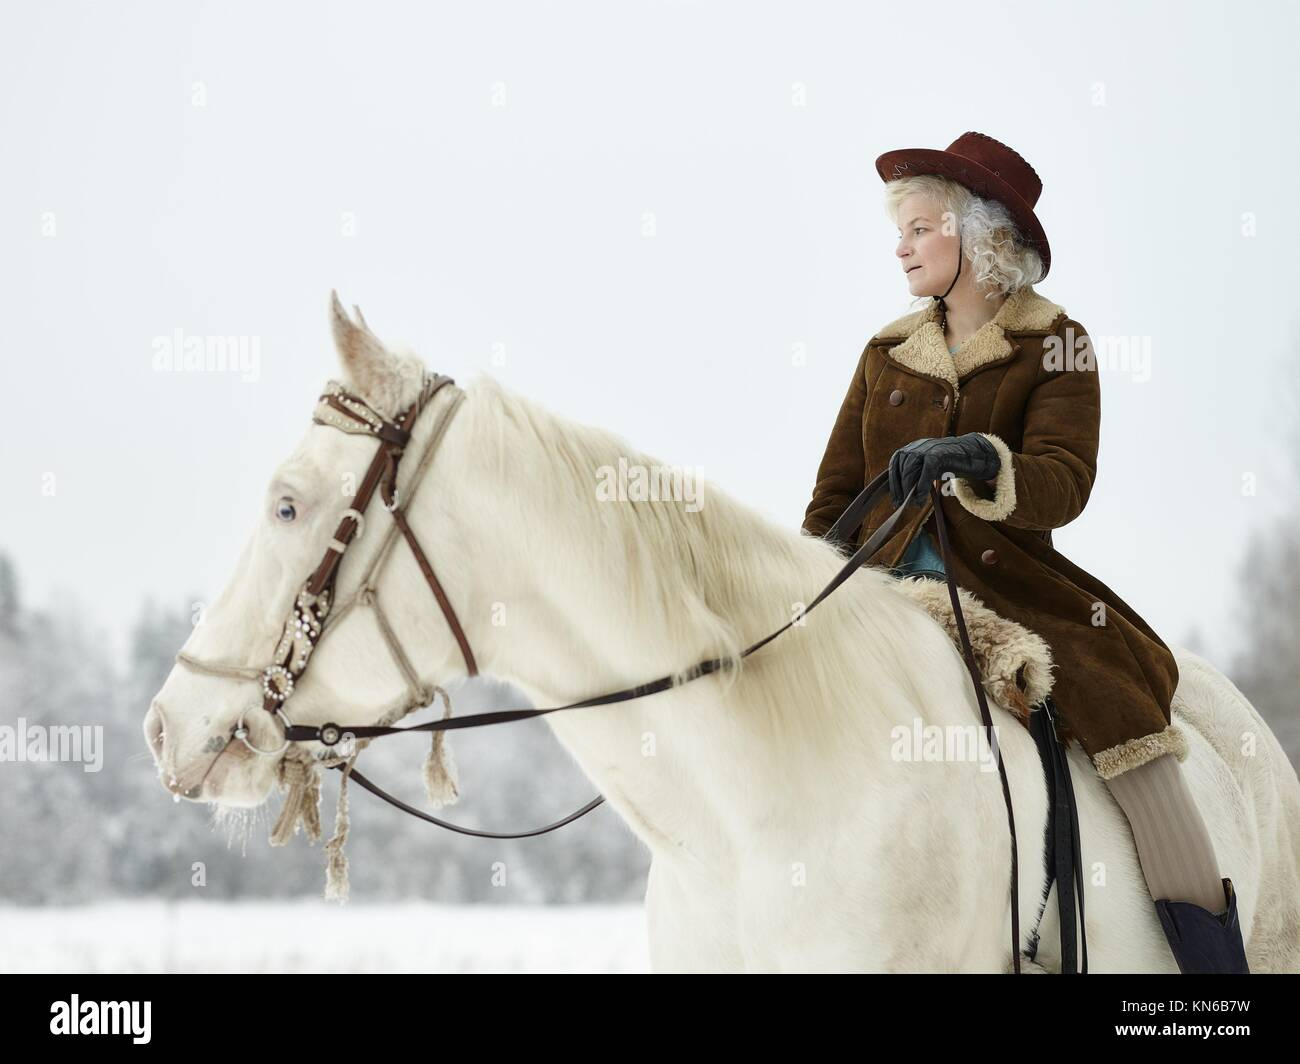 Attractive woman wearing winter jacket and hat, she riding a white horse. South Finland in February. Stock Photo